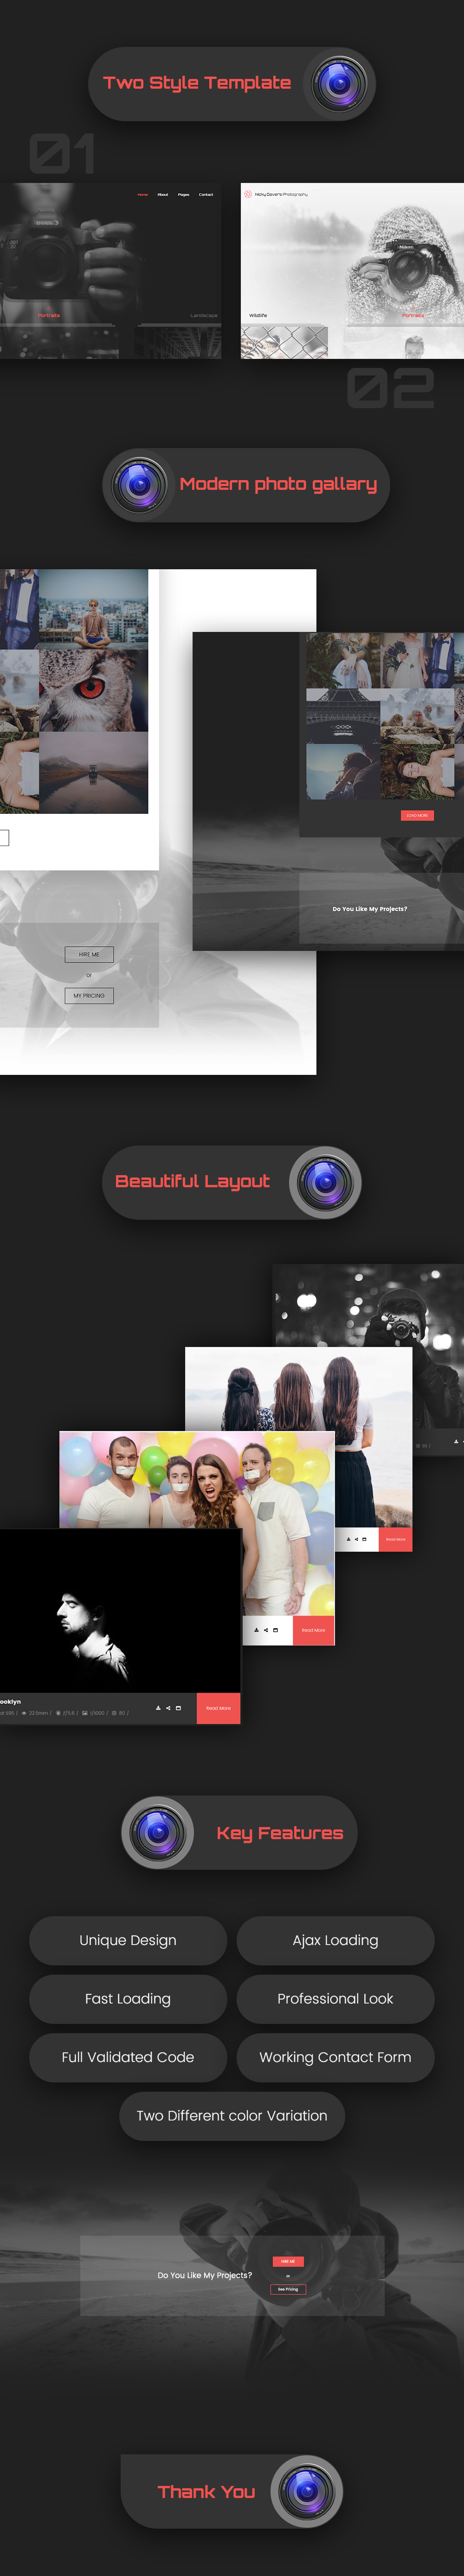 Shutter - Creative Personal Photography Template - 1